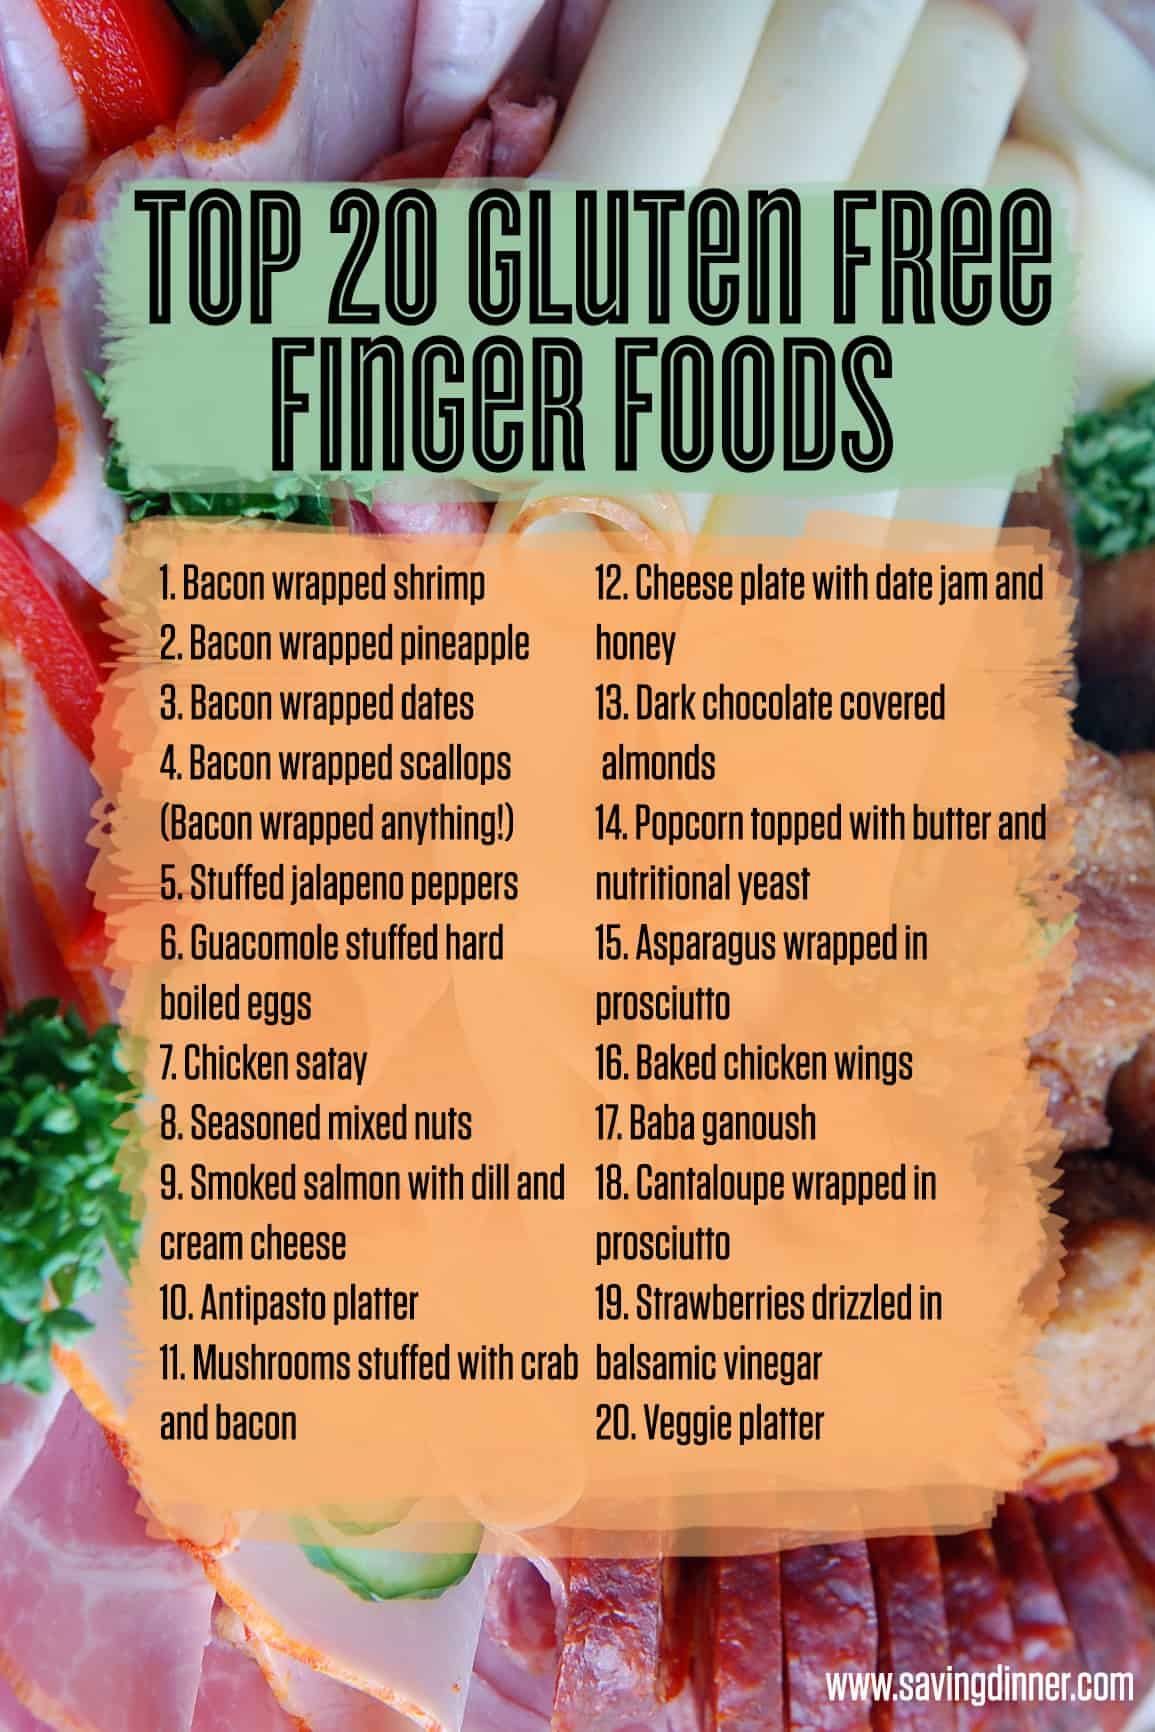 Gluten free finger foods saving dinner top 20 gluten free finger foods from saving dinner forumfinder Gallery